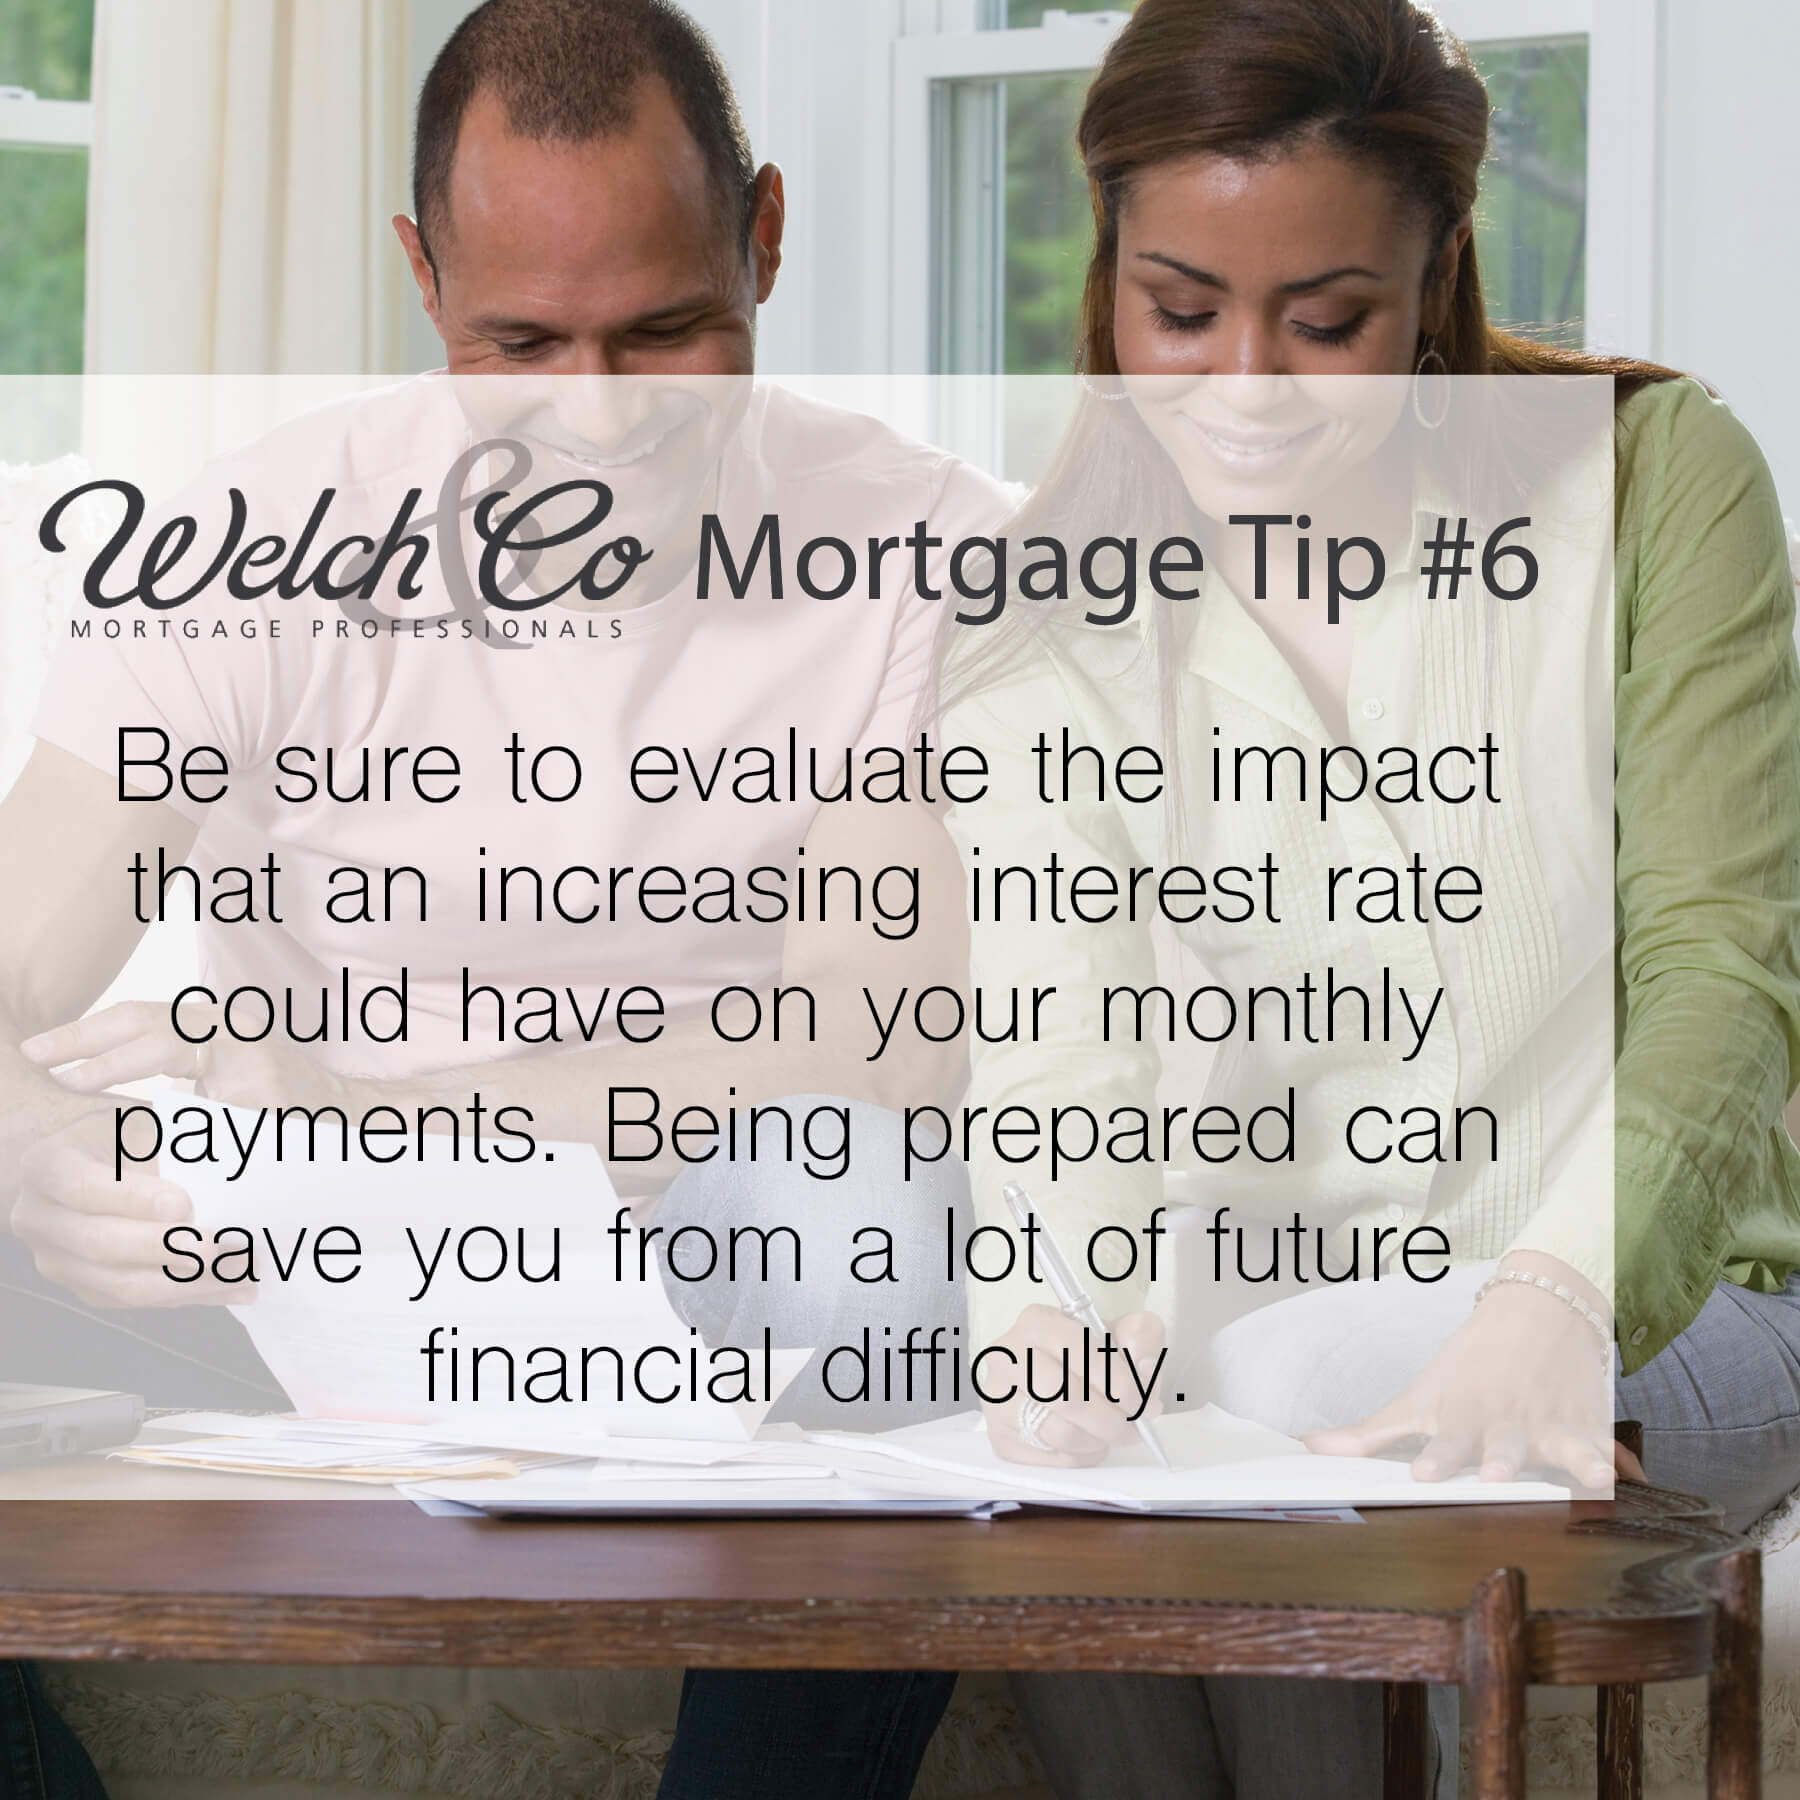 Mortgage Tip #6 - Welch & Co. Mortgage Professionals